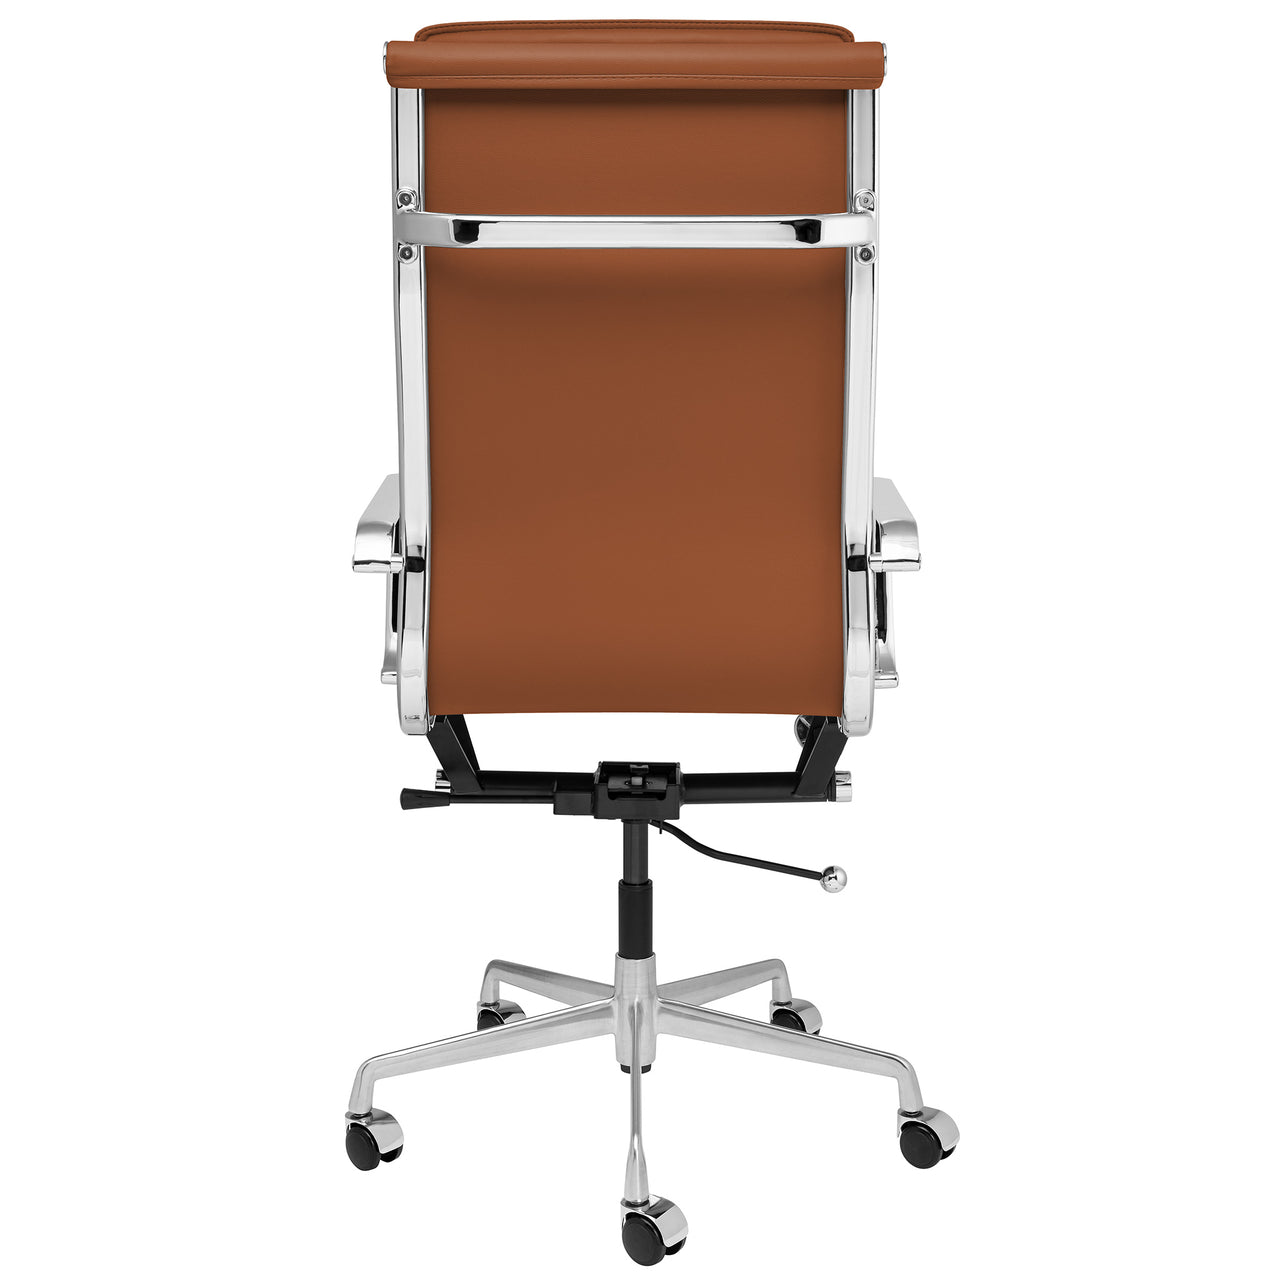 SHIPS OCTOBER 16TH - Lexi Tall Back Soft Pad Office Chair (Brown)